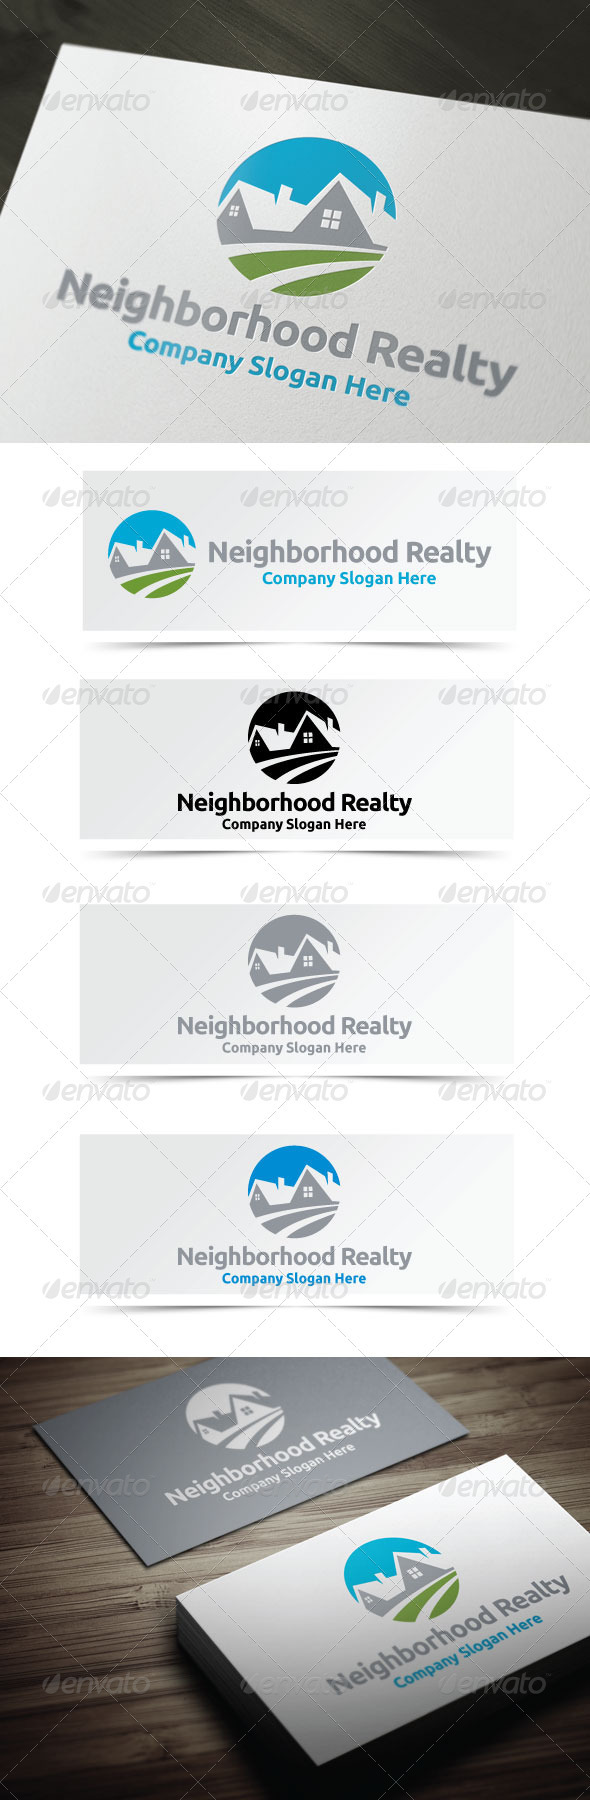 Neighborhood Realty - Buildings Logo Templates